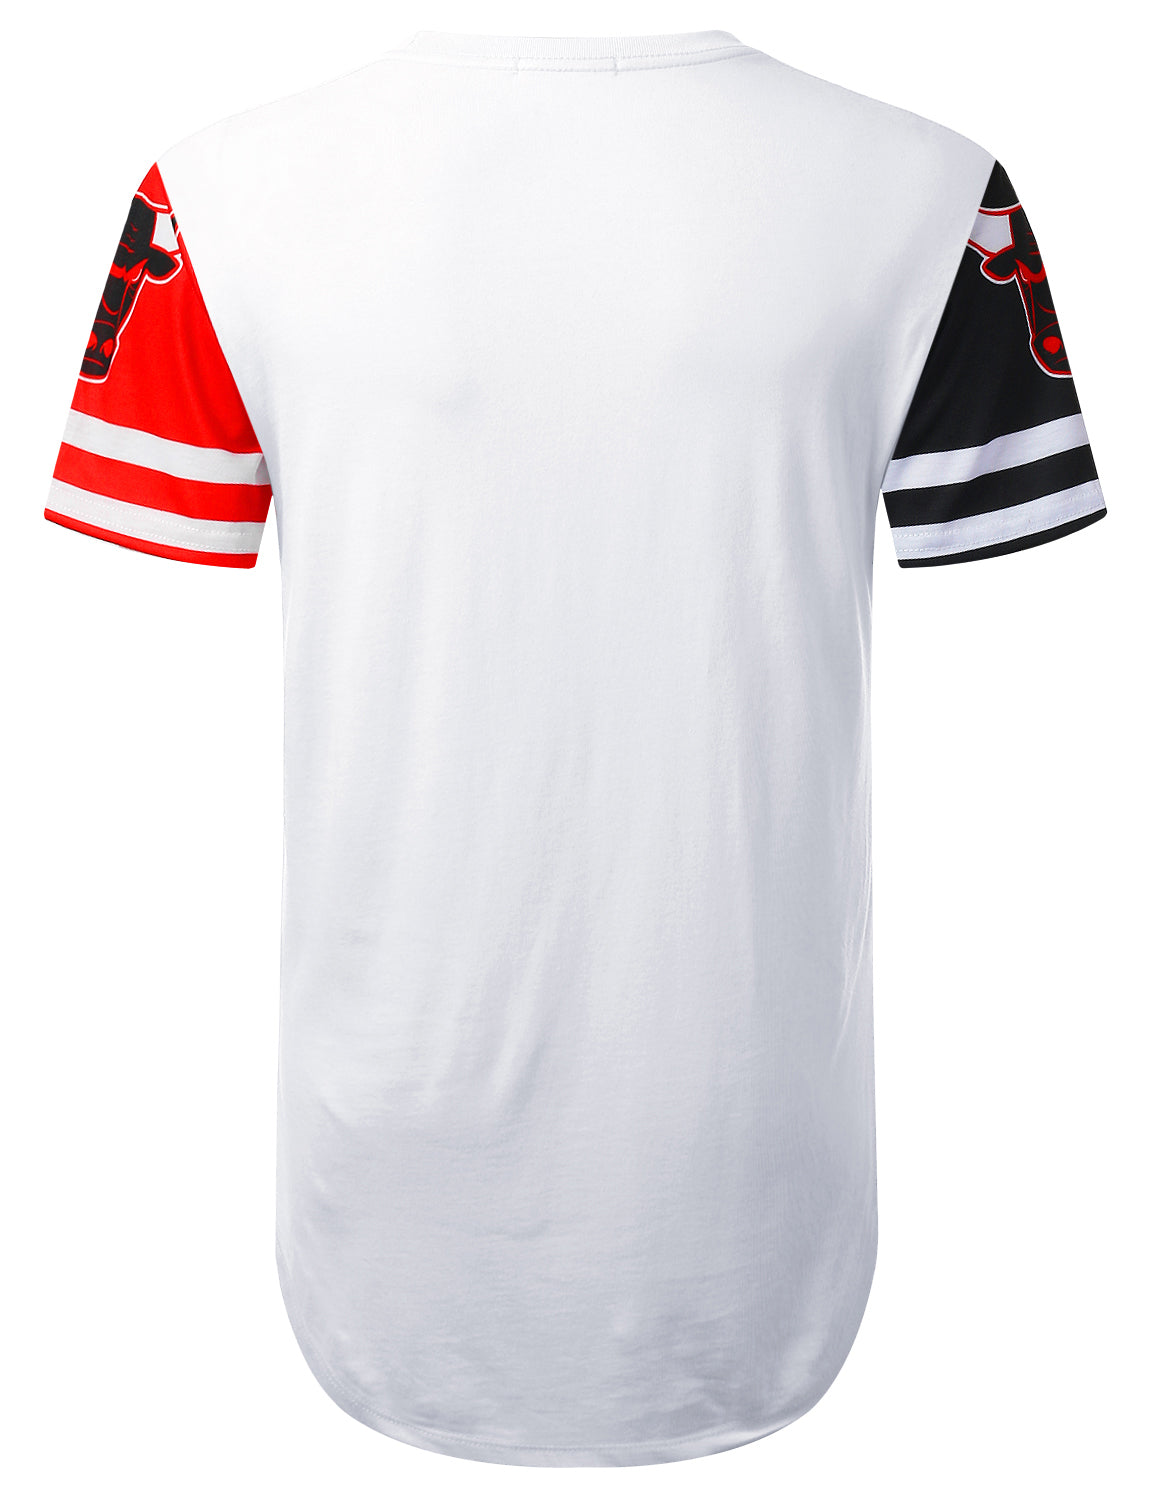 WHITE Panel Bulls Graphic Longline T-shirt - URBANCREWS